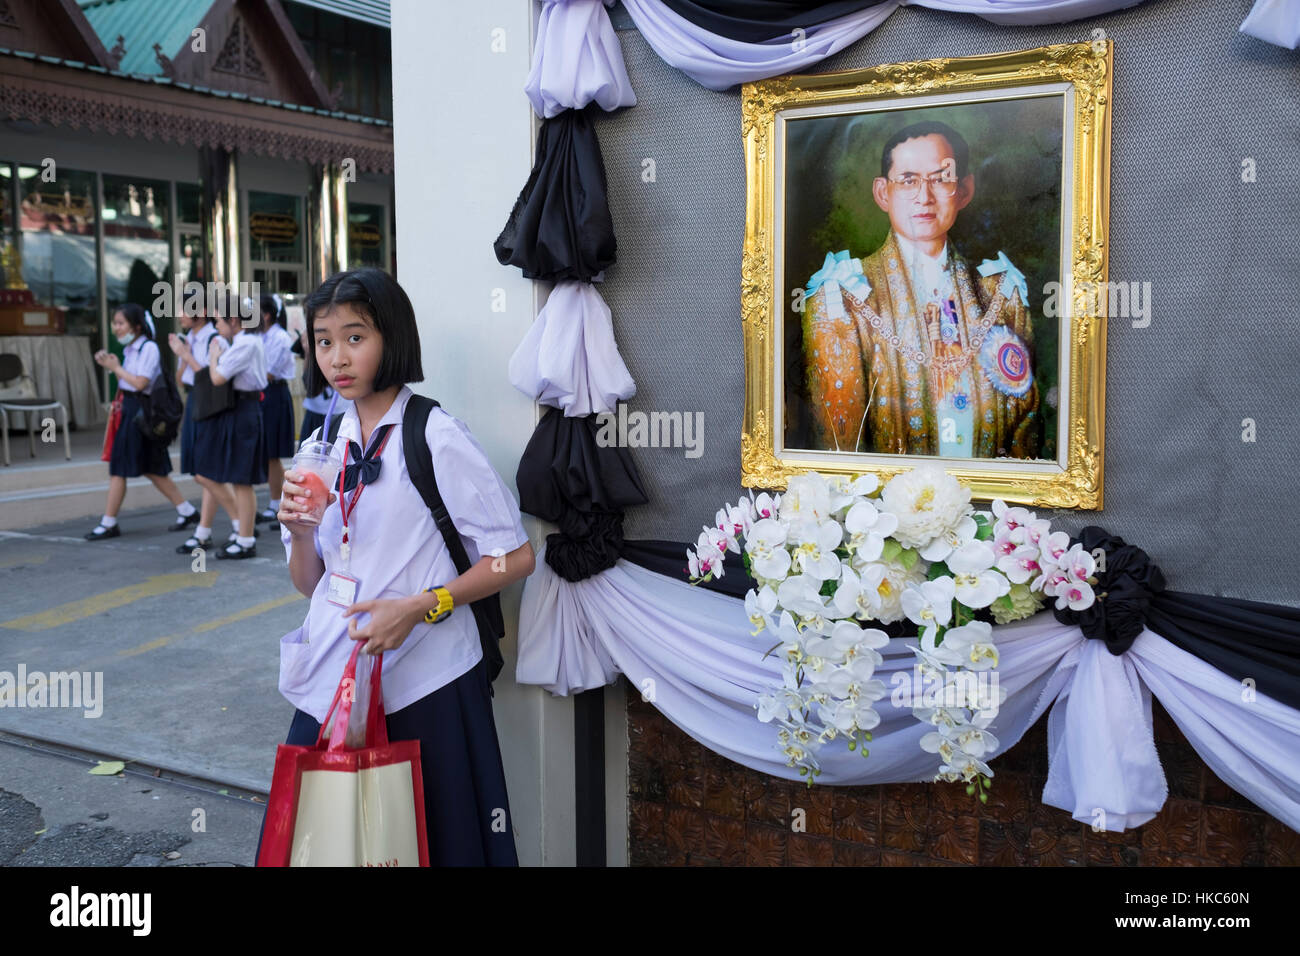 Thai School Girl Is Seen Next To A Portrait Of King Bhumibol Adulyadej Stock Image